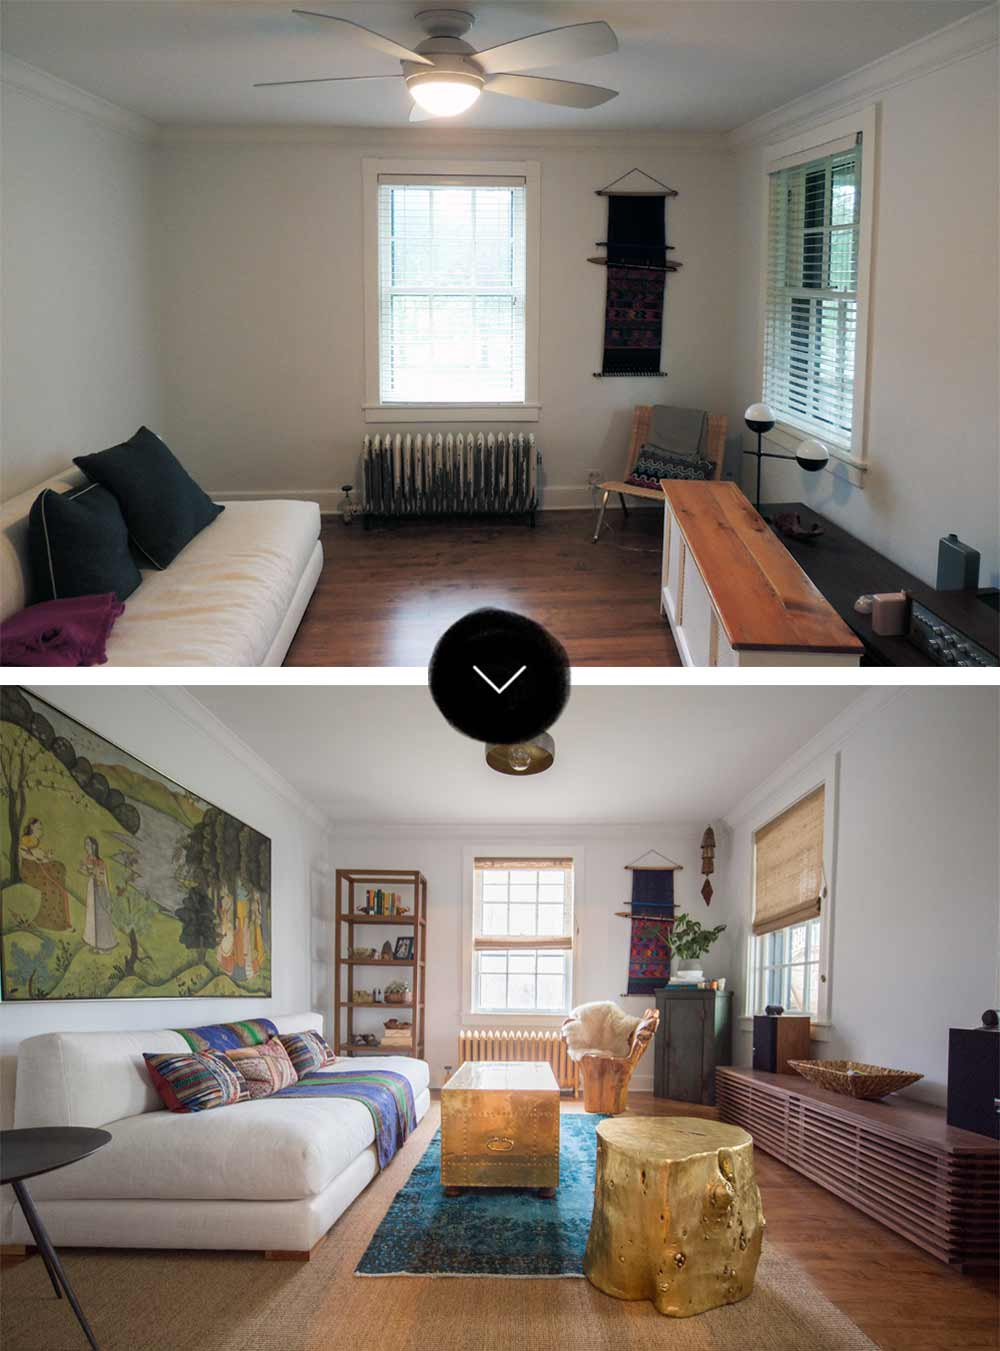 Before & After: A Unique Homestead Coach House Makeover, on Design*Sponge